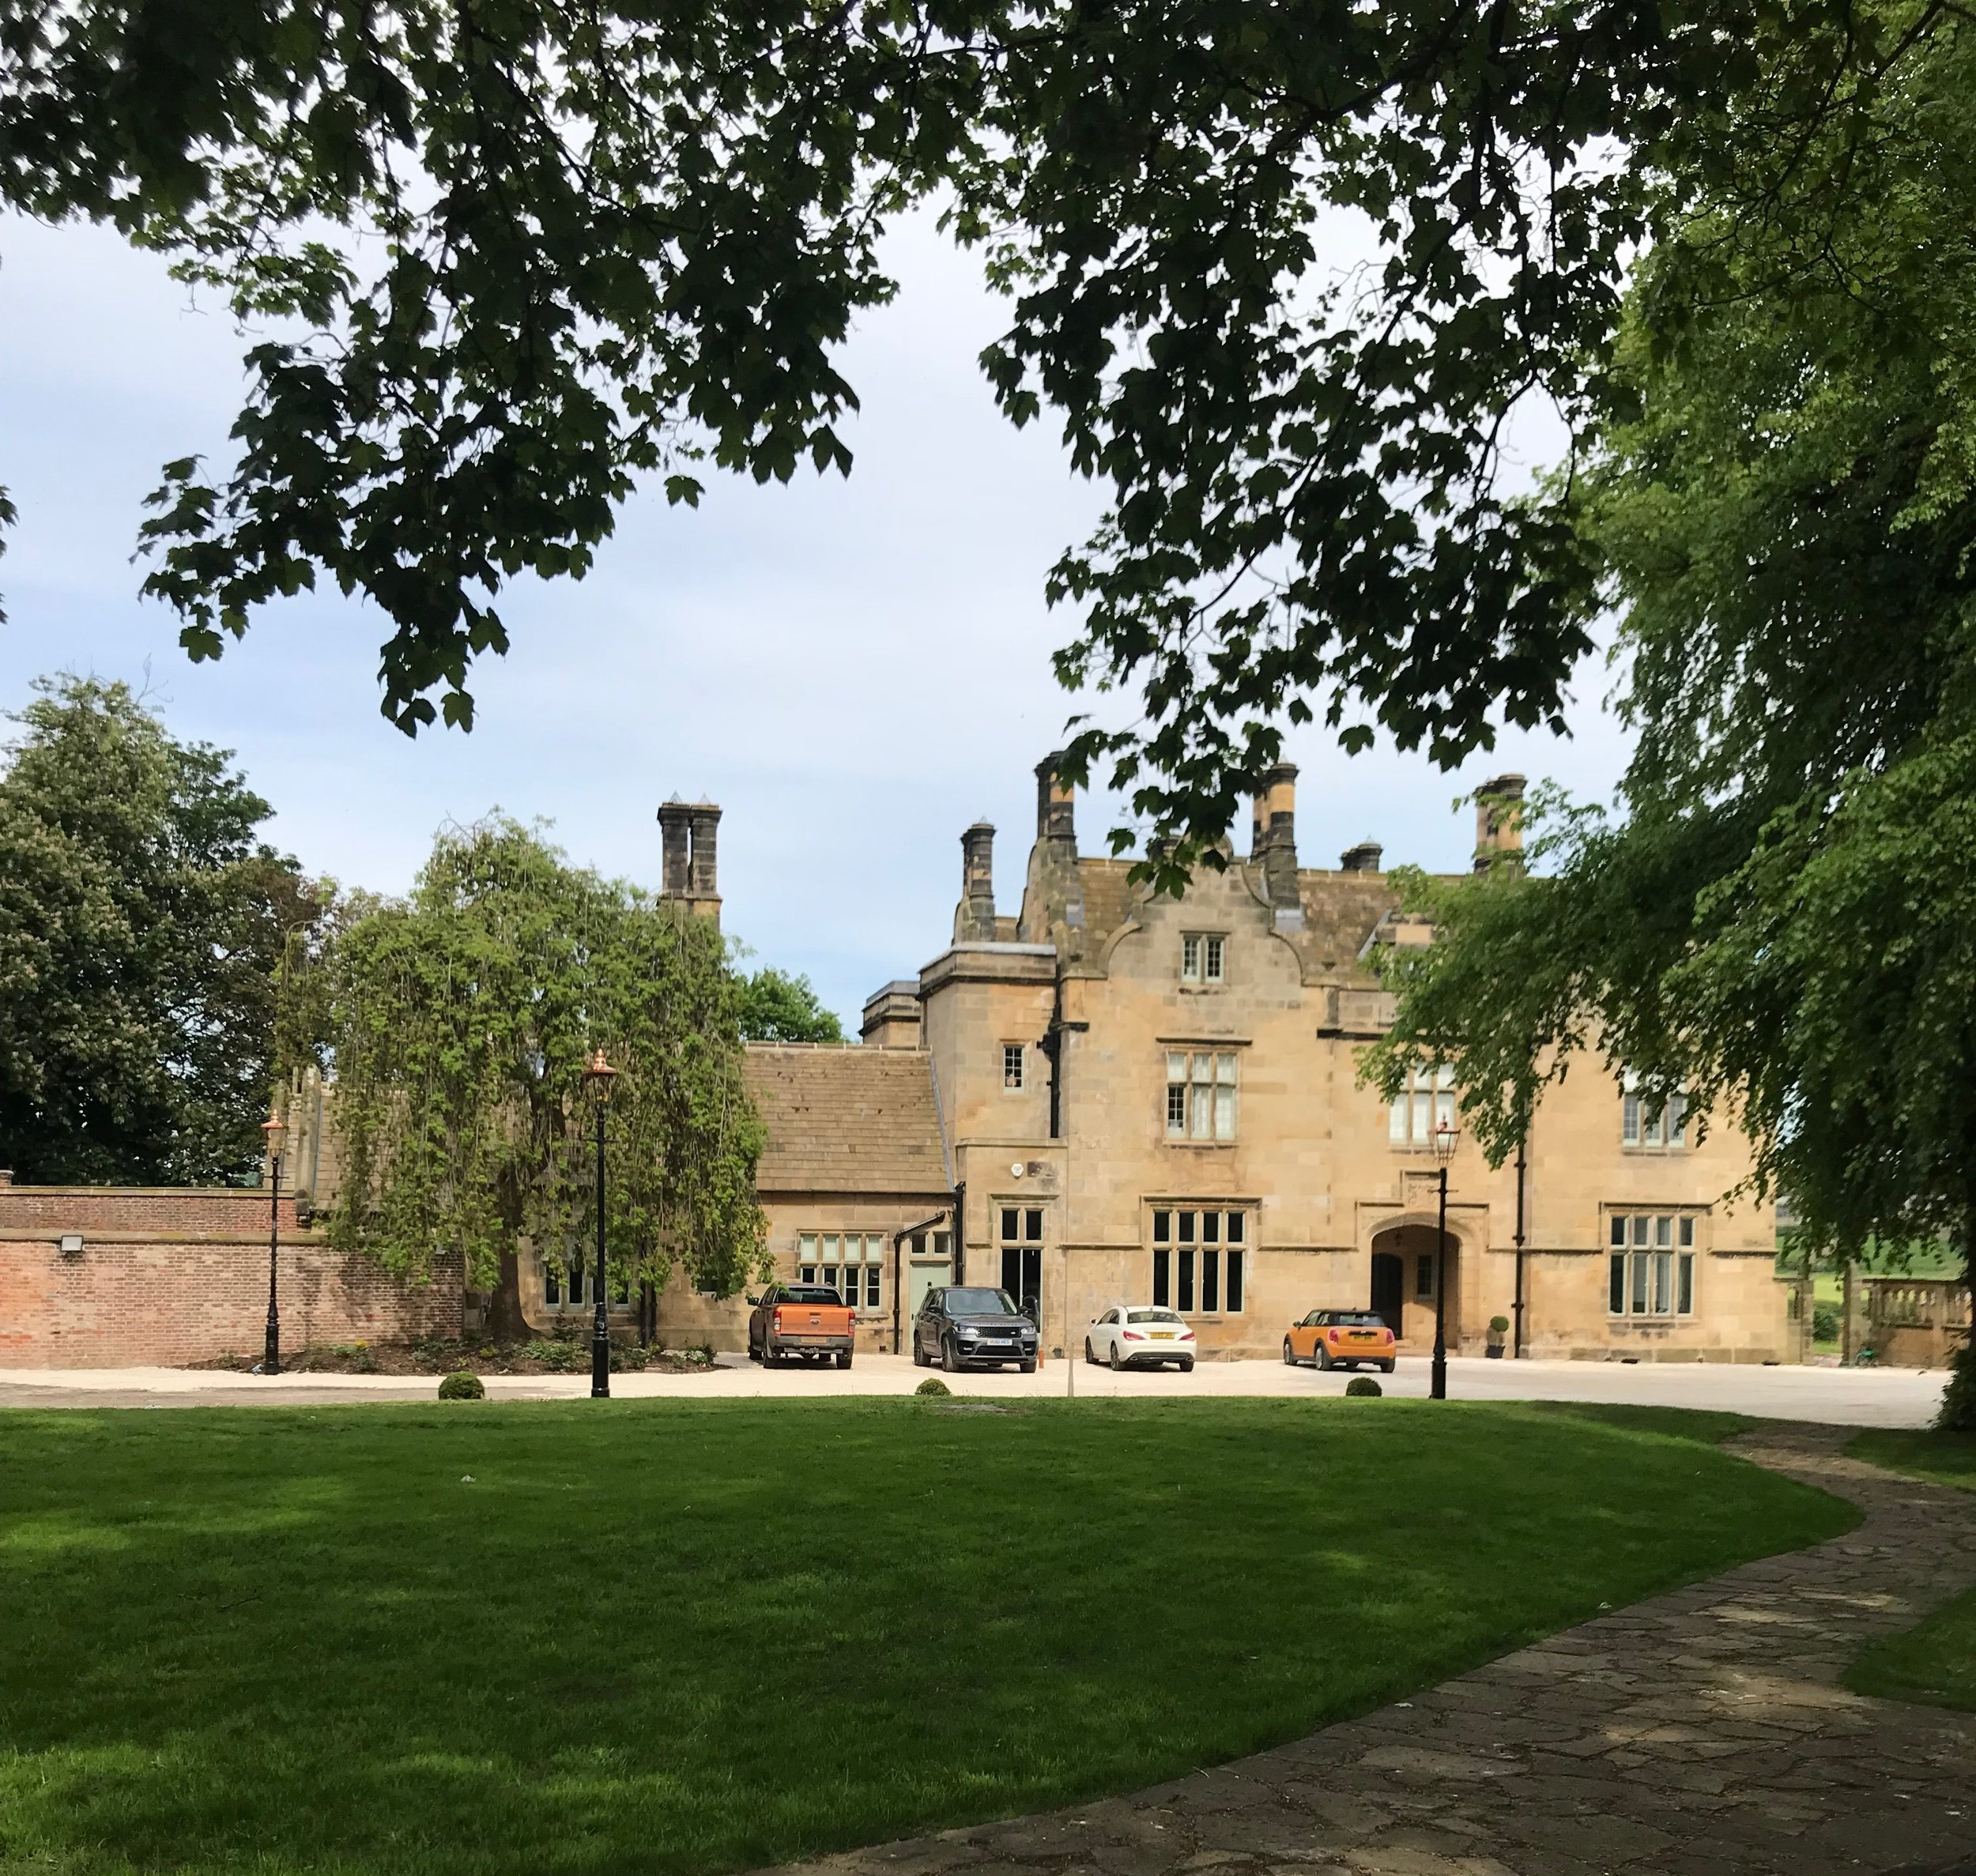 As testament to the successful renovation of Grade II* Listed Sockburn Hall, it was shortlisted for a prestigious Historic England conservation award.